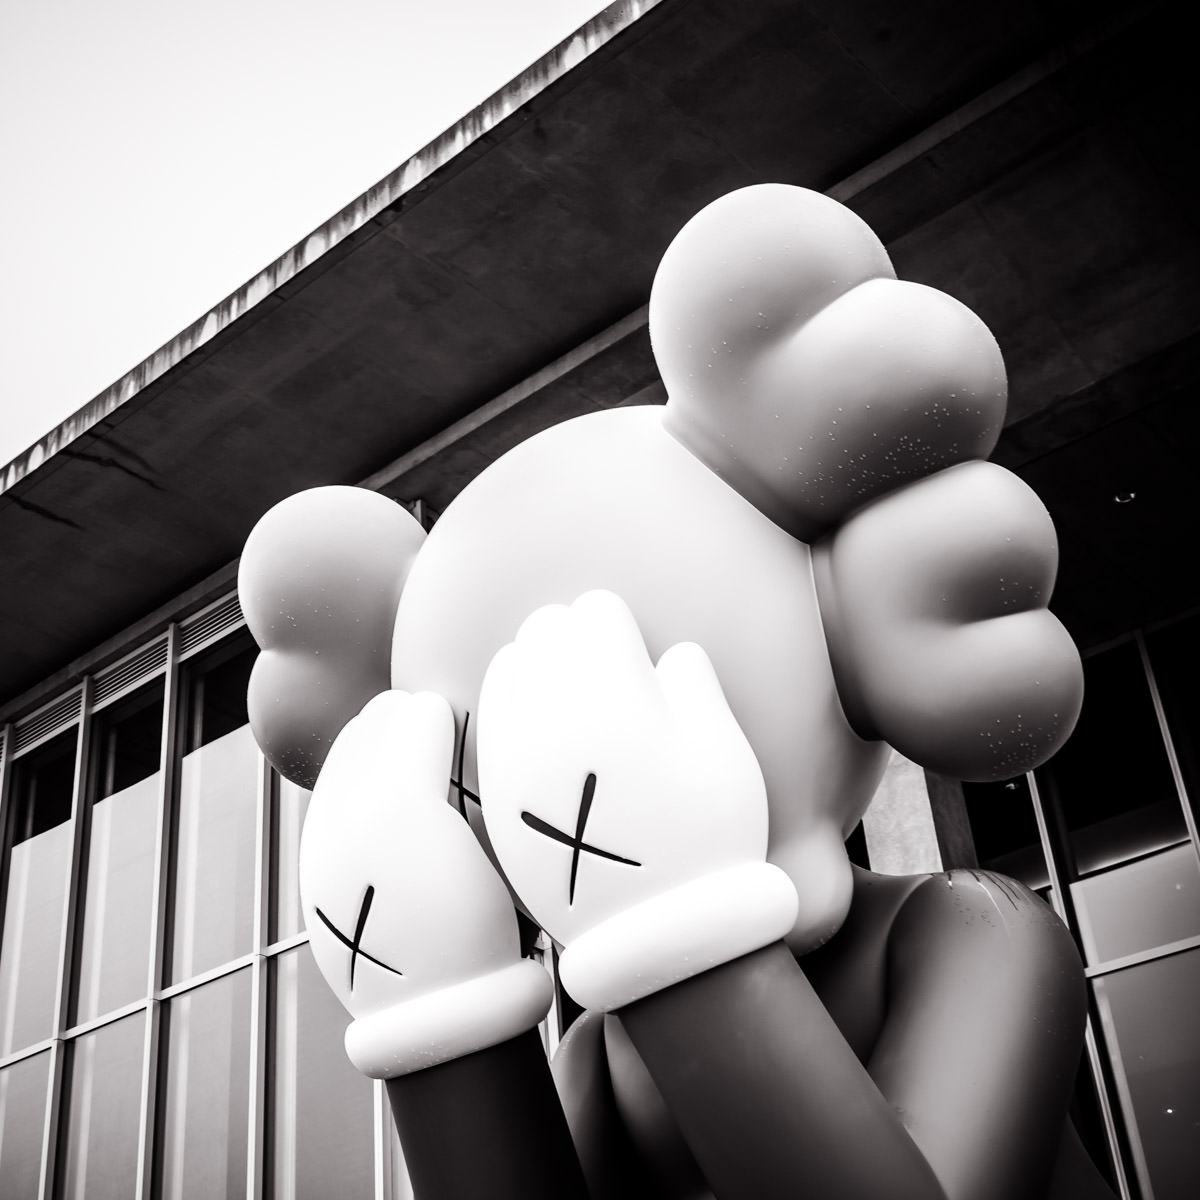 Companion (Passing Through) by American artist KAWS (Brian Donnelly), outside the Fort Worth Modern.